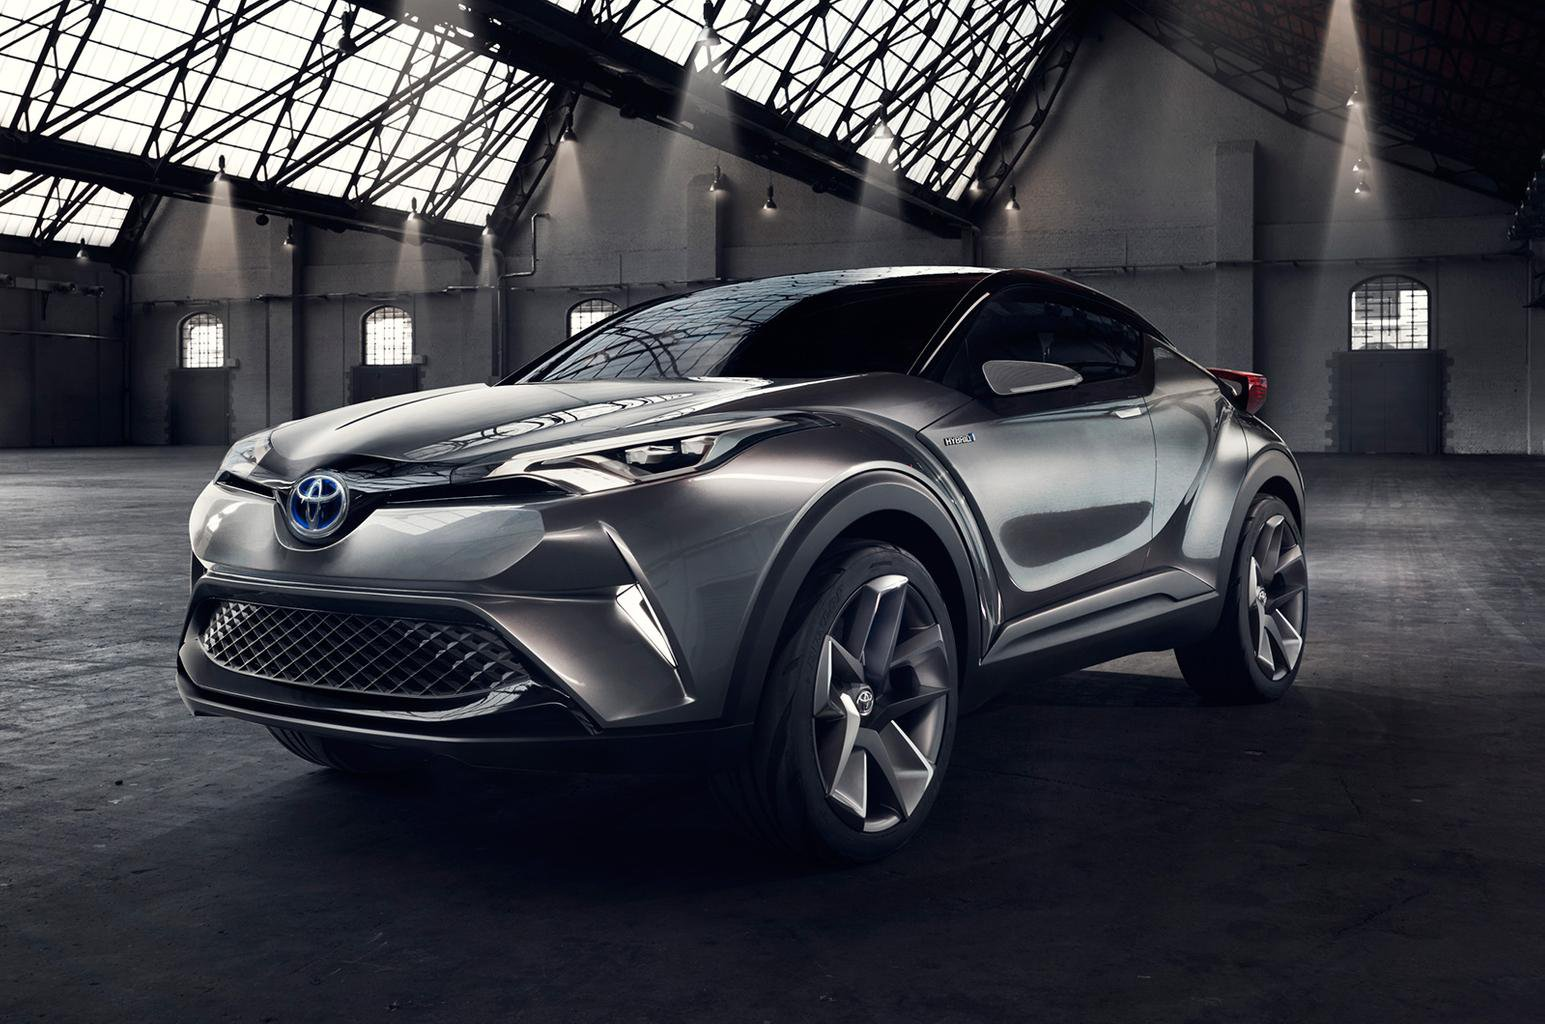 Production Toyota C-HR due at Geneva show